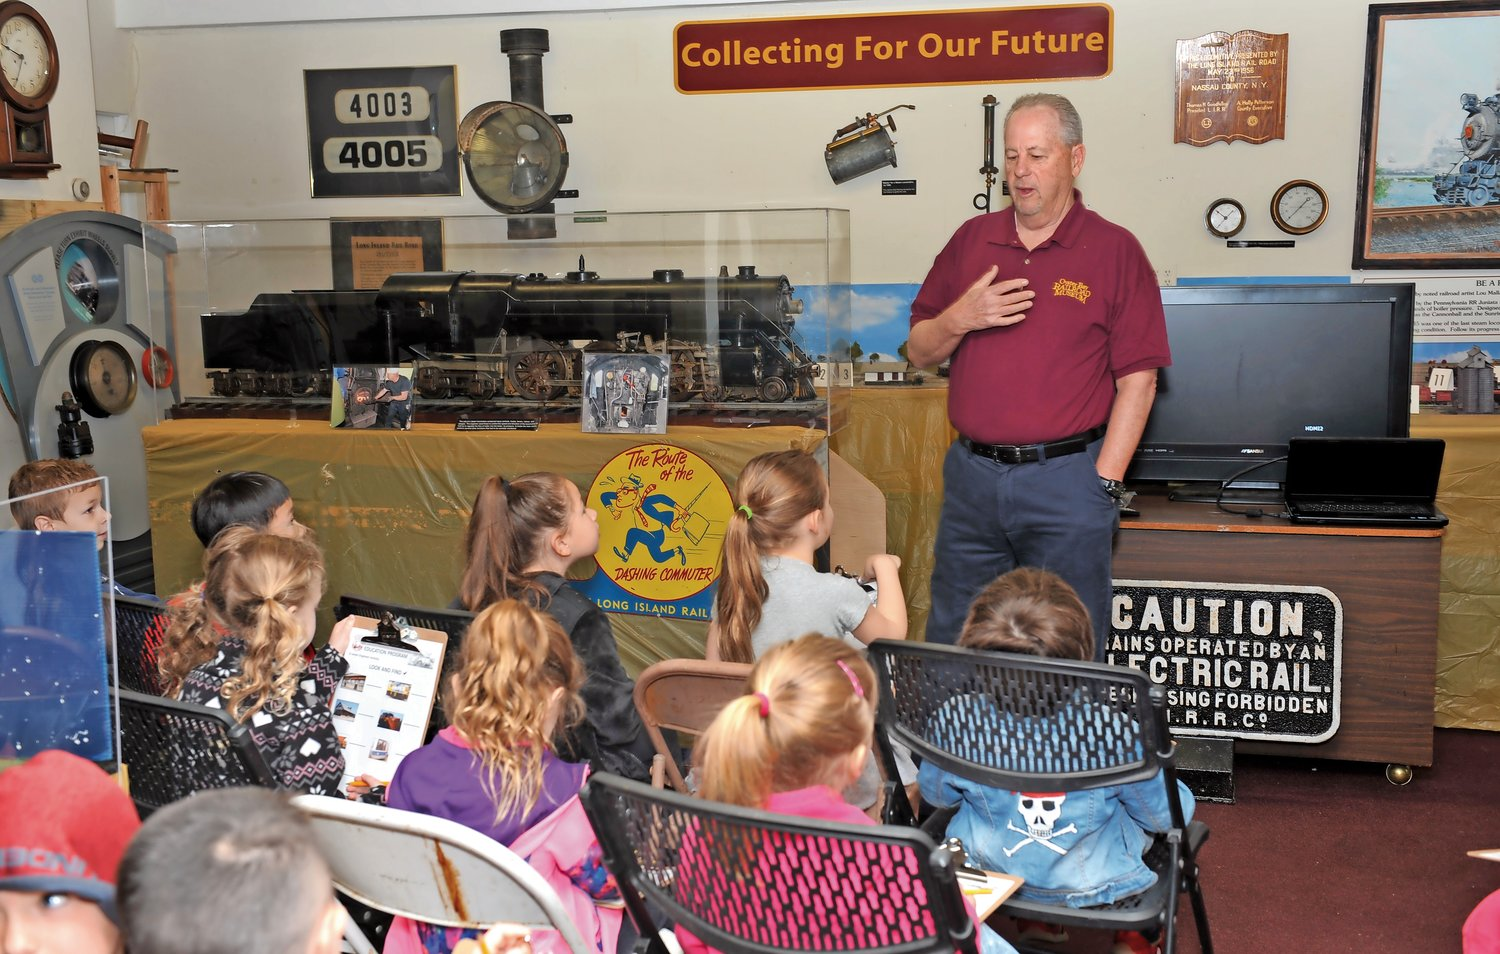 Bill Burke, the volunteer in charge of education programs at the museum, shared the history of the Oyster Bay railroad station with the kindergartners.